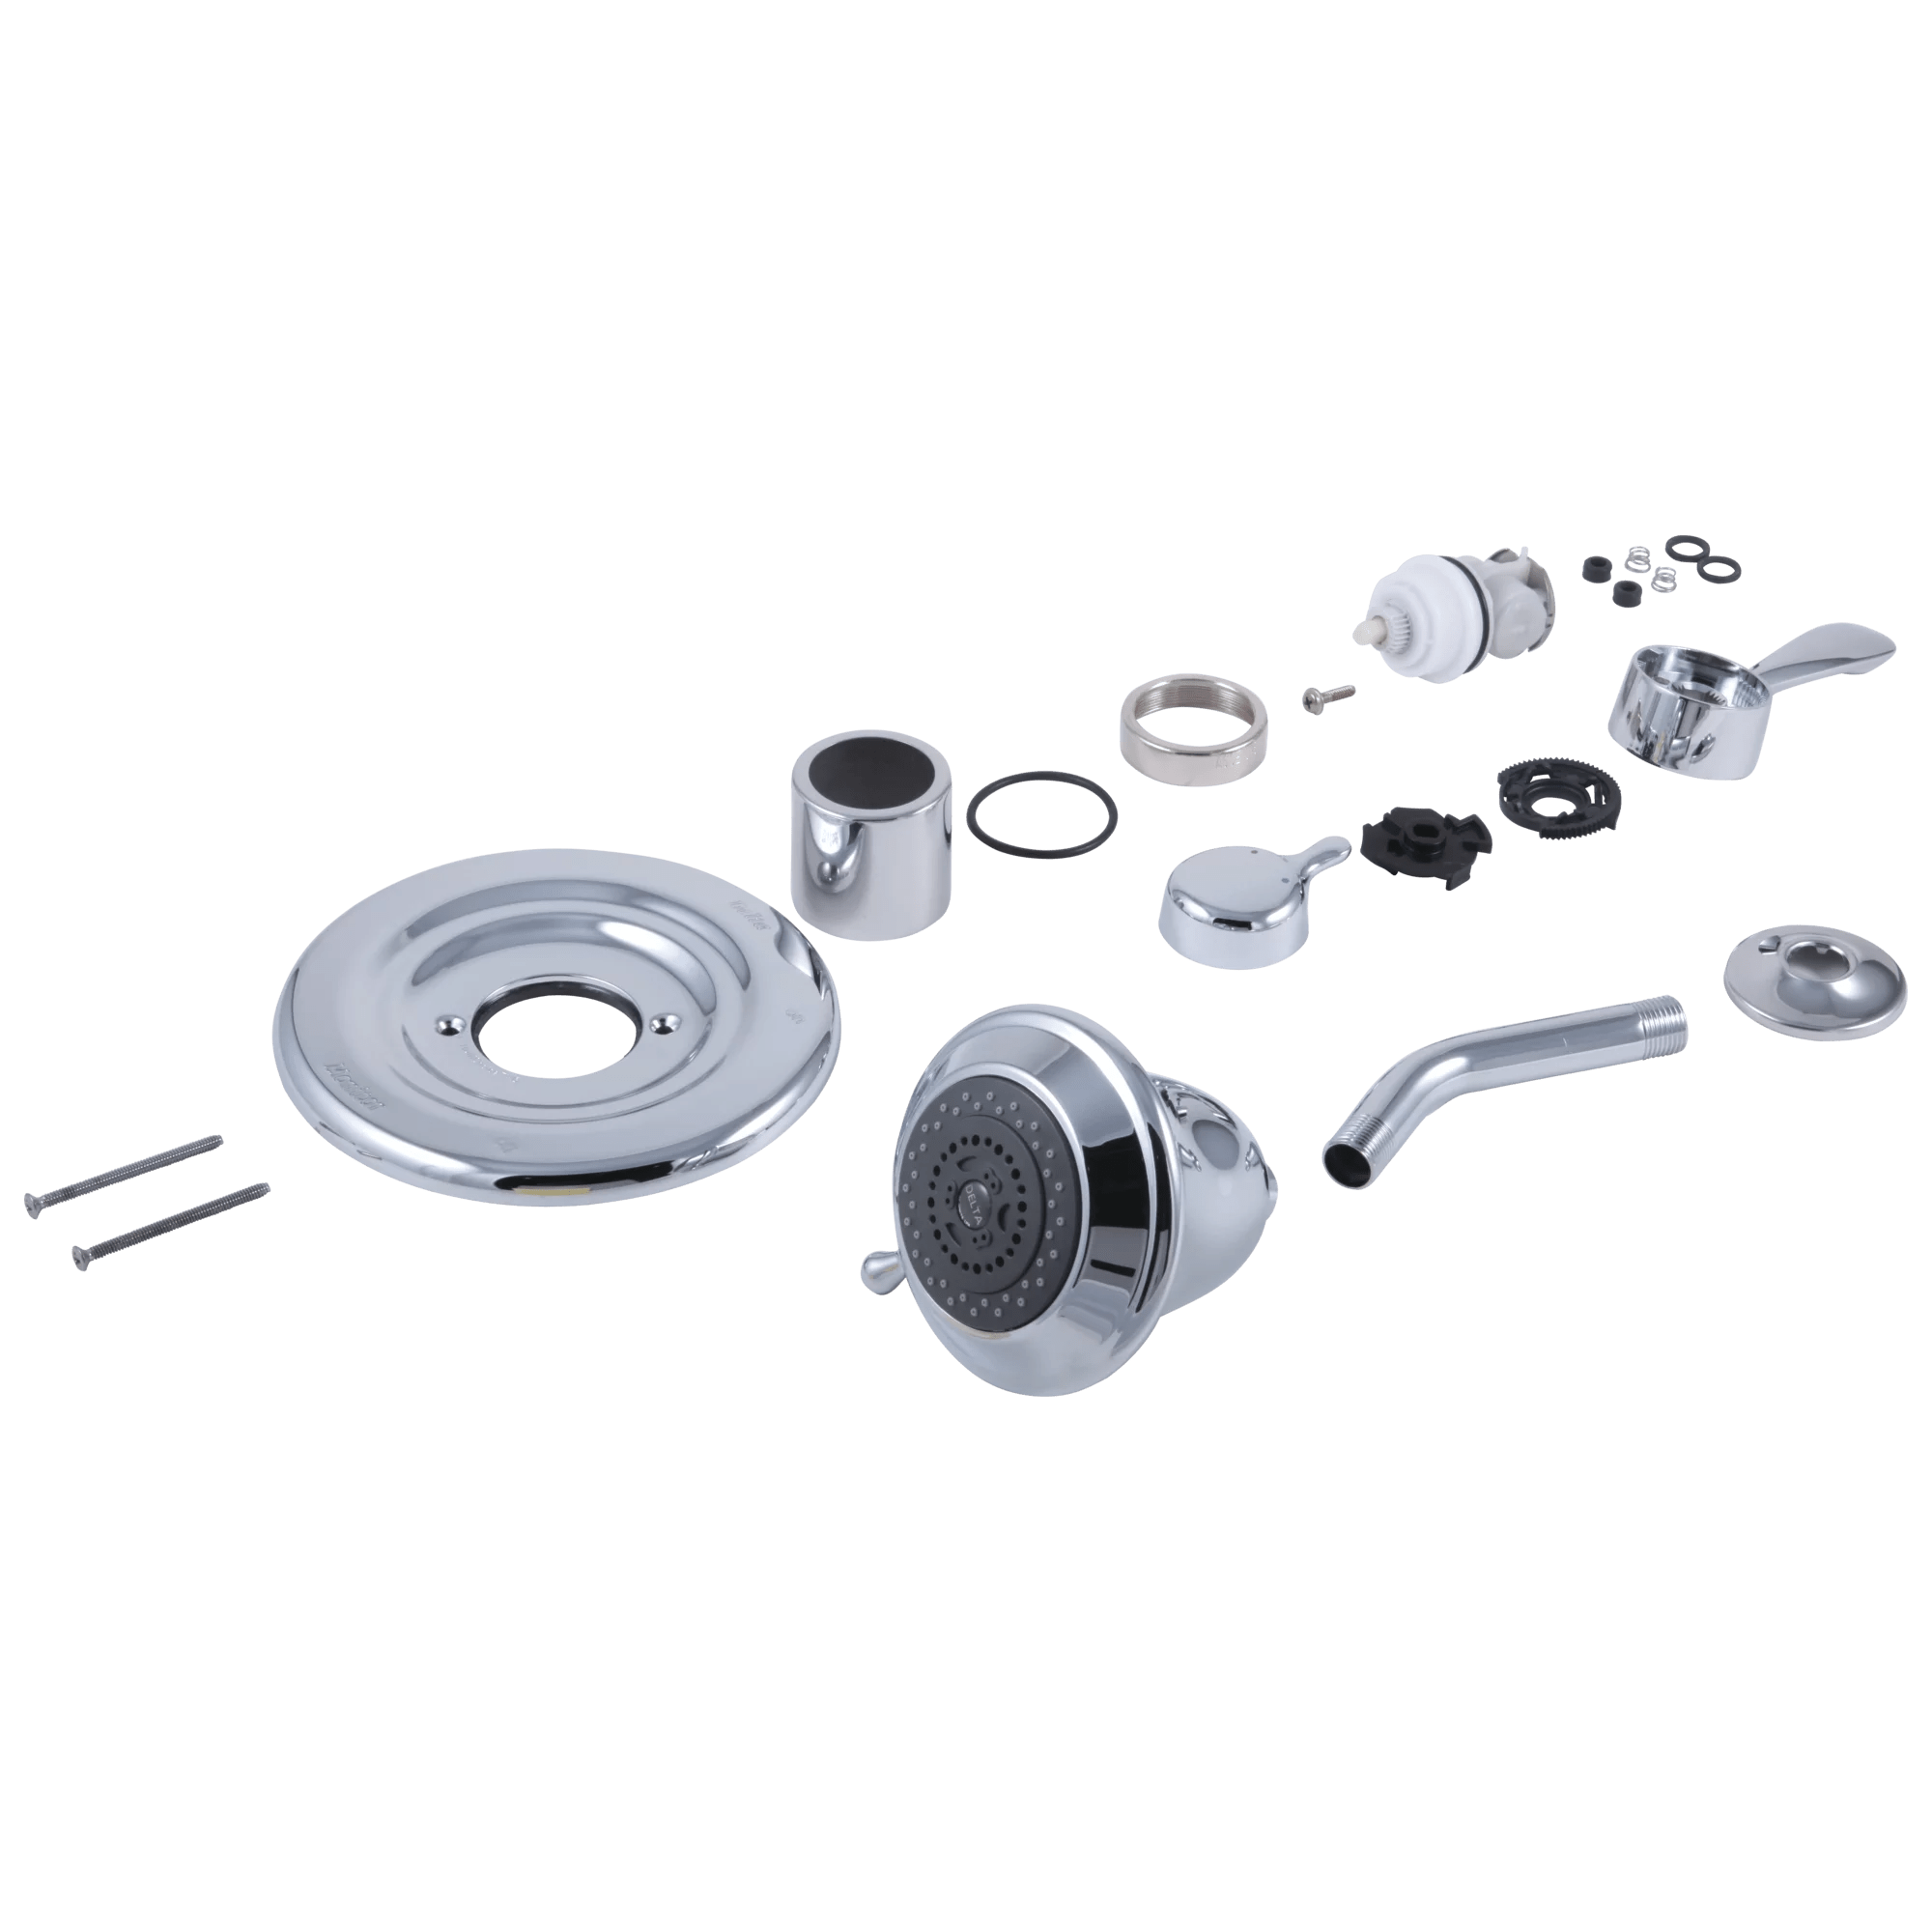 delta conversion kit for 1500 series to 17 series tub shower faucets in chrome rp29405 walmart com